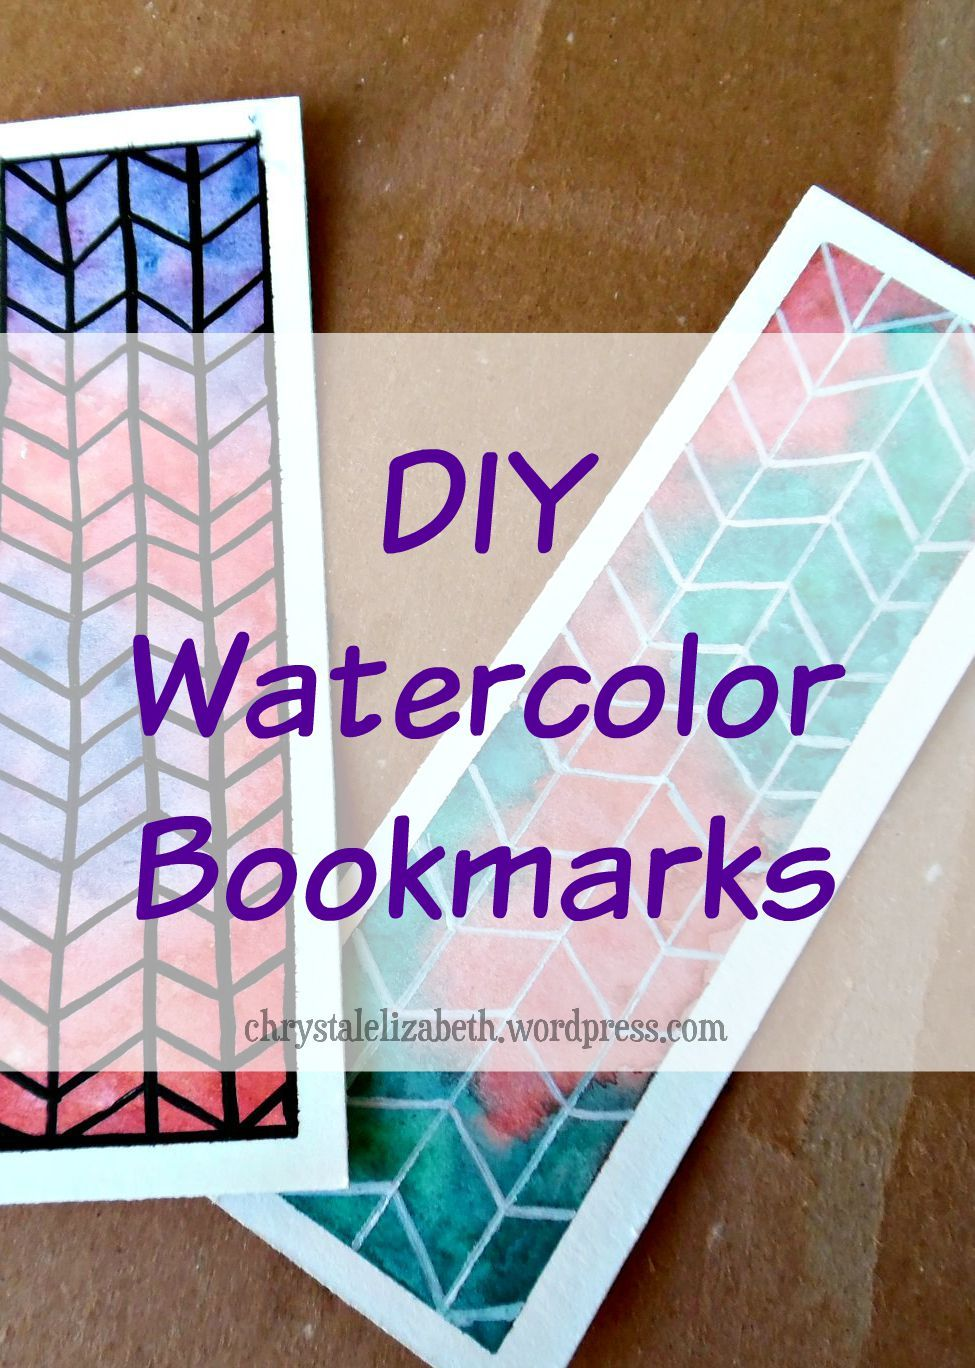 Watercolor bookmarks - Diy Watercolor Bookmark Chrystalizabeth More